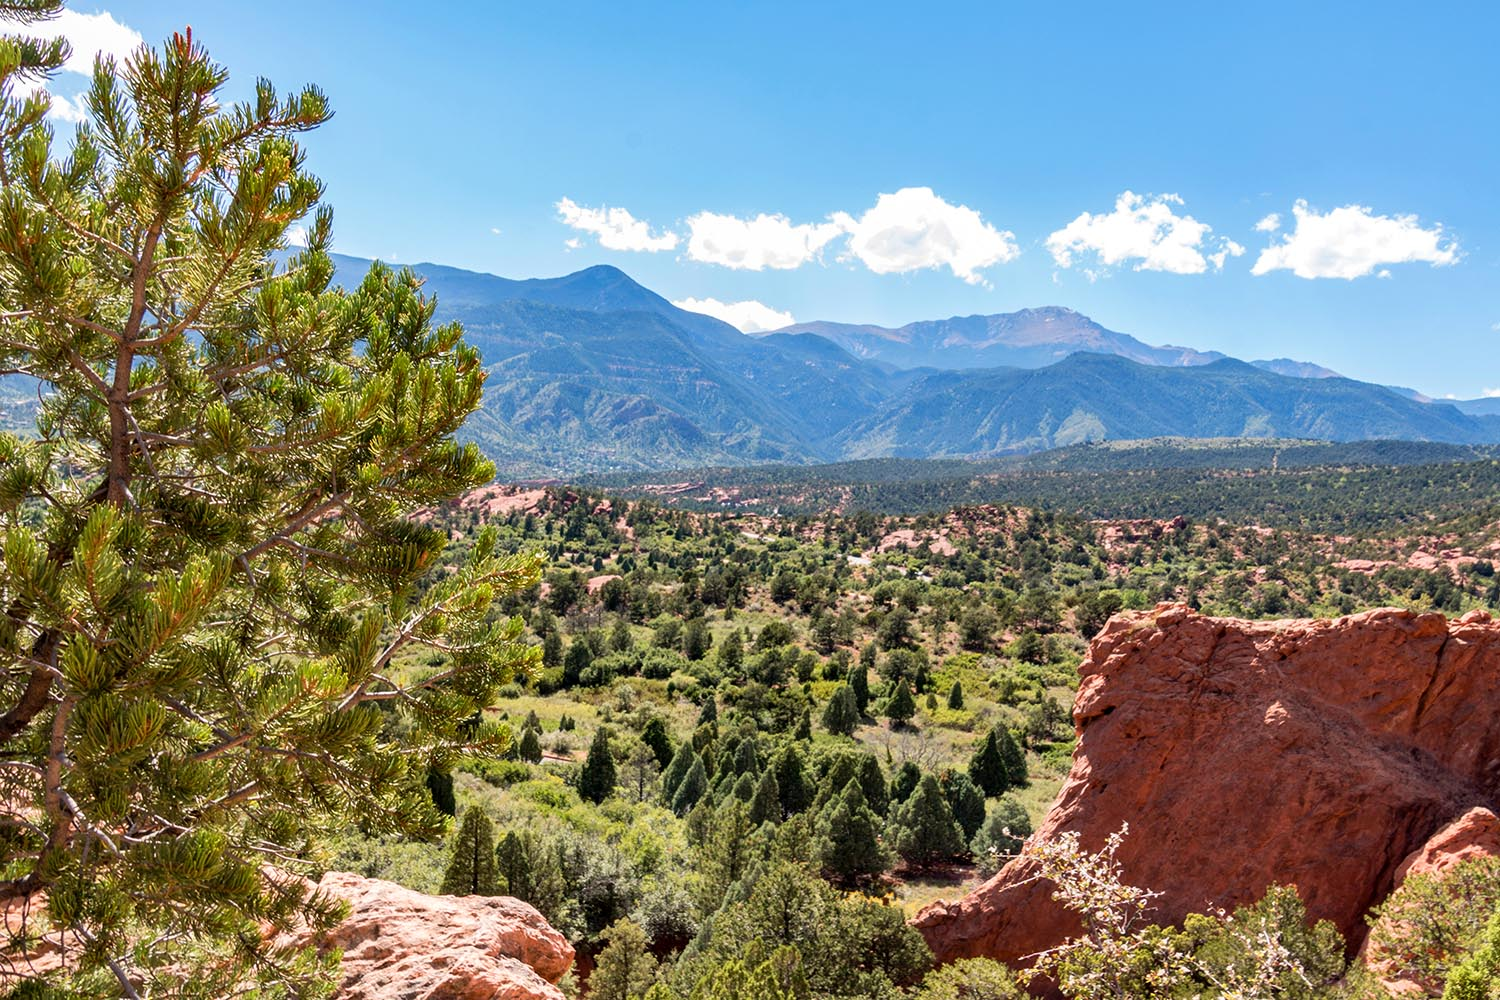 a-gorgeous-view-of-the-rocky-mountains-from-the-garden-of-the-gods